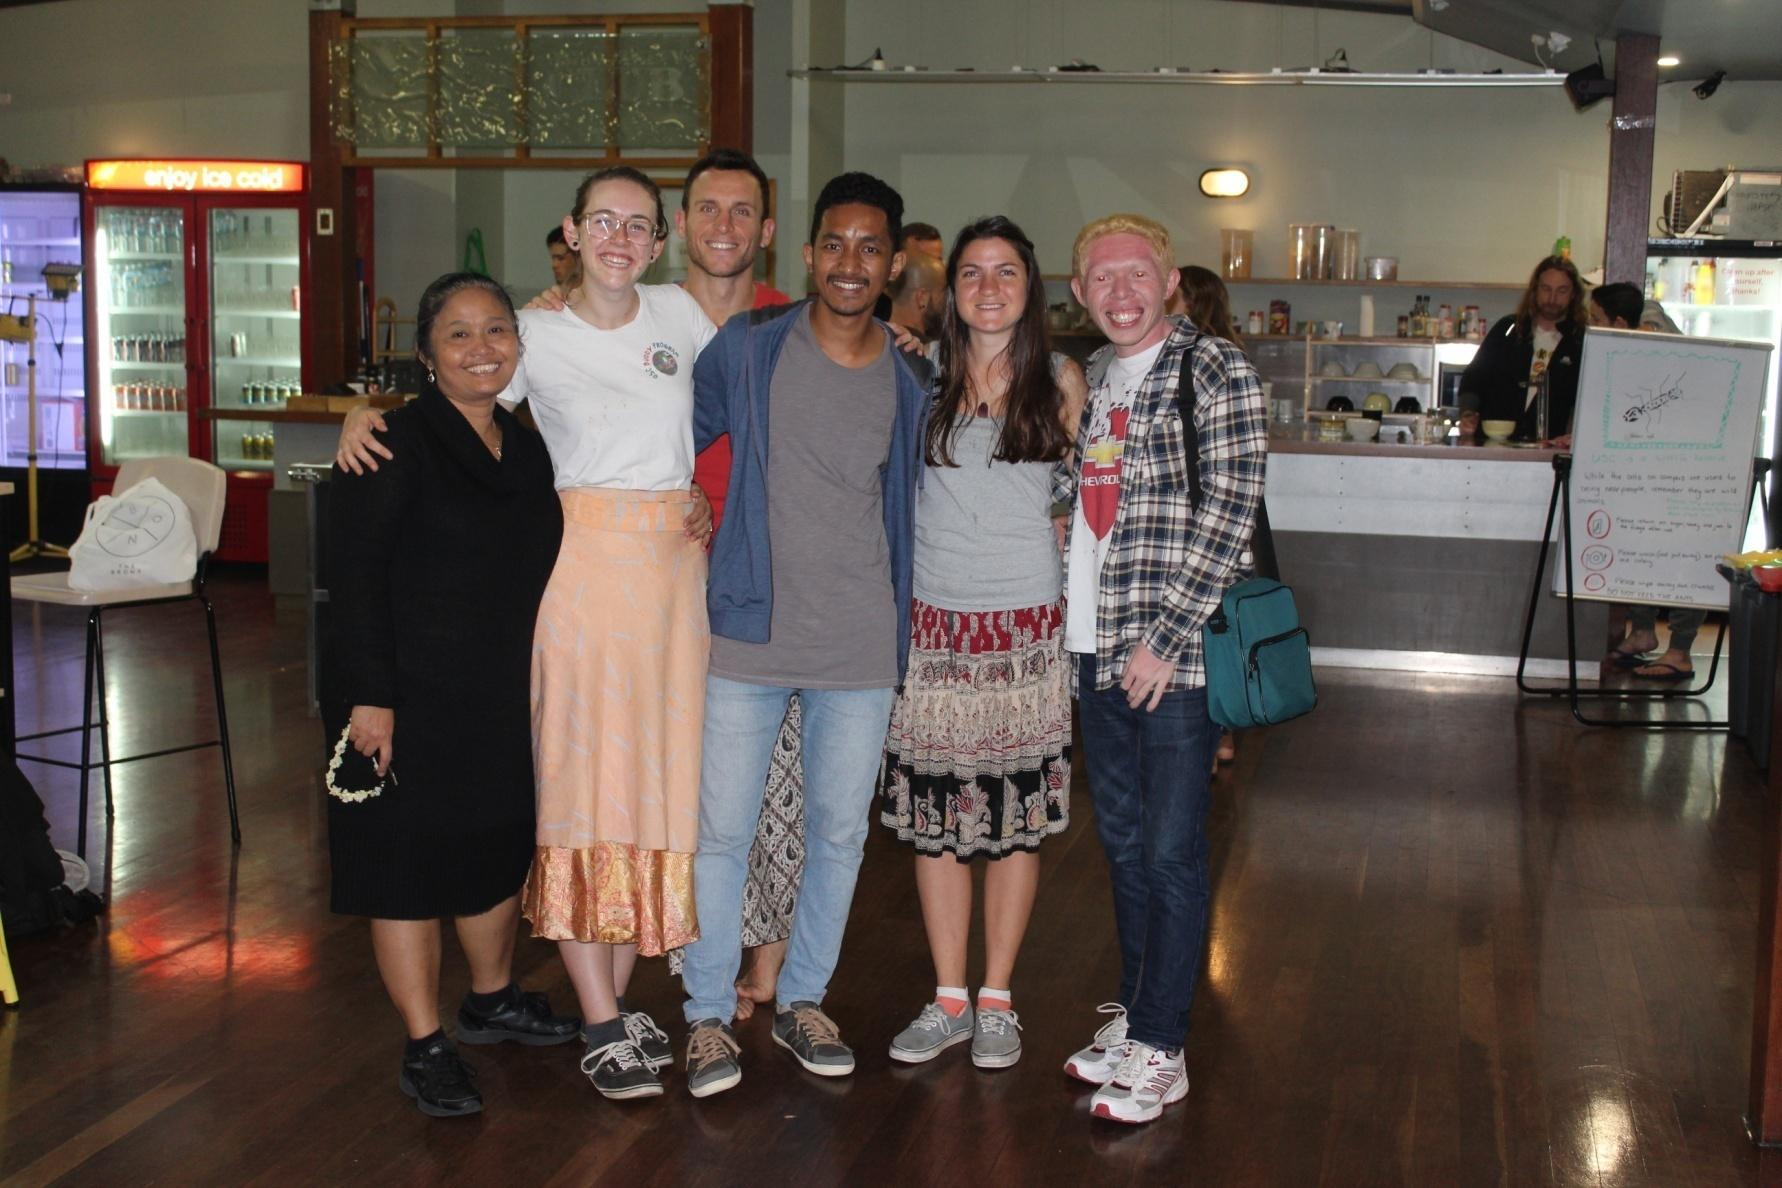 Taking picture with Ibu Endah Curtis, Amy Della-Torre, Mandula Barta and some guy in International Food Festival, USC.